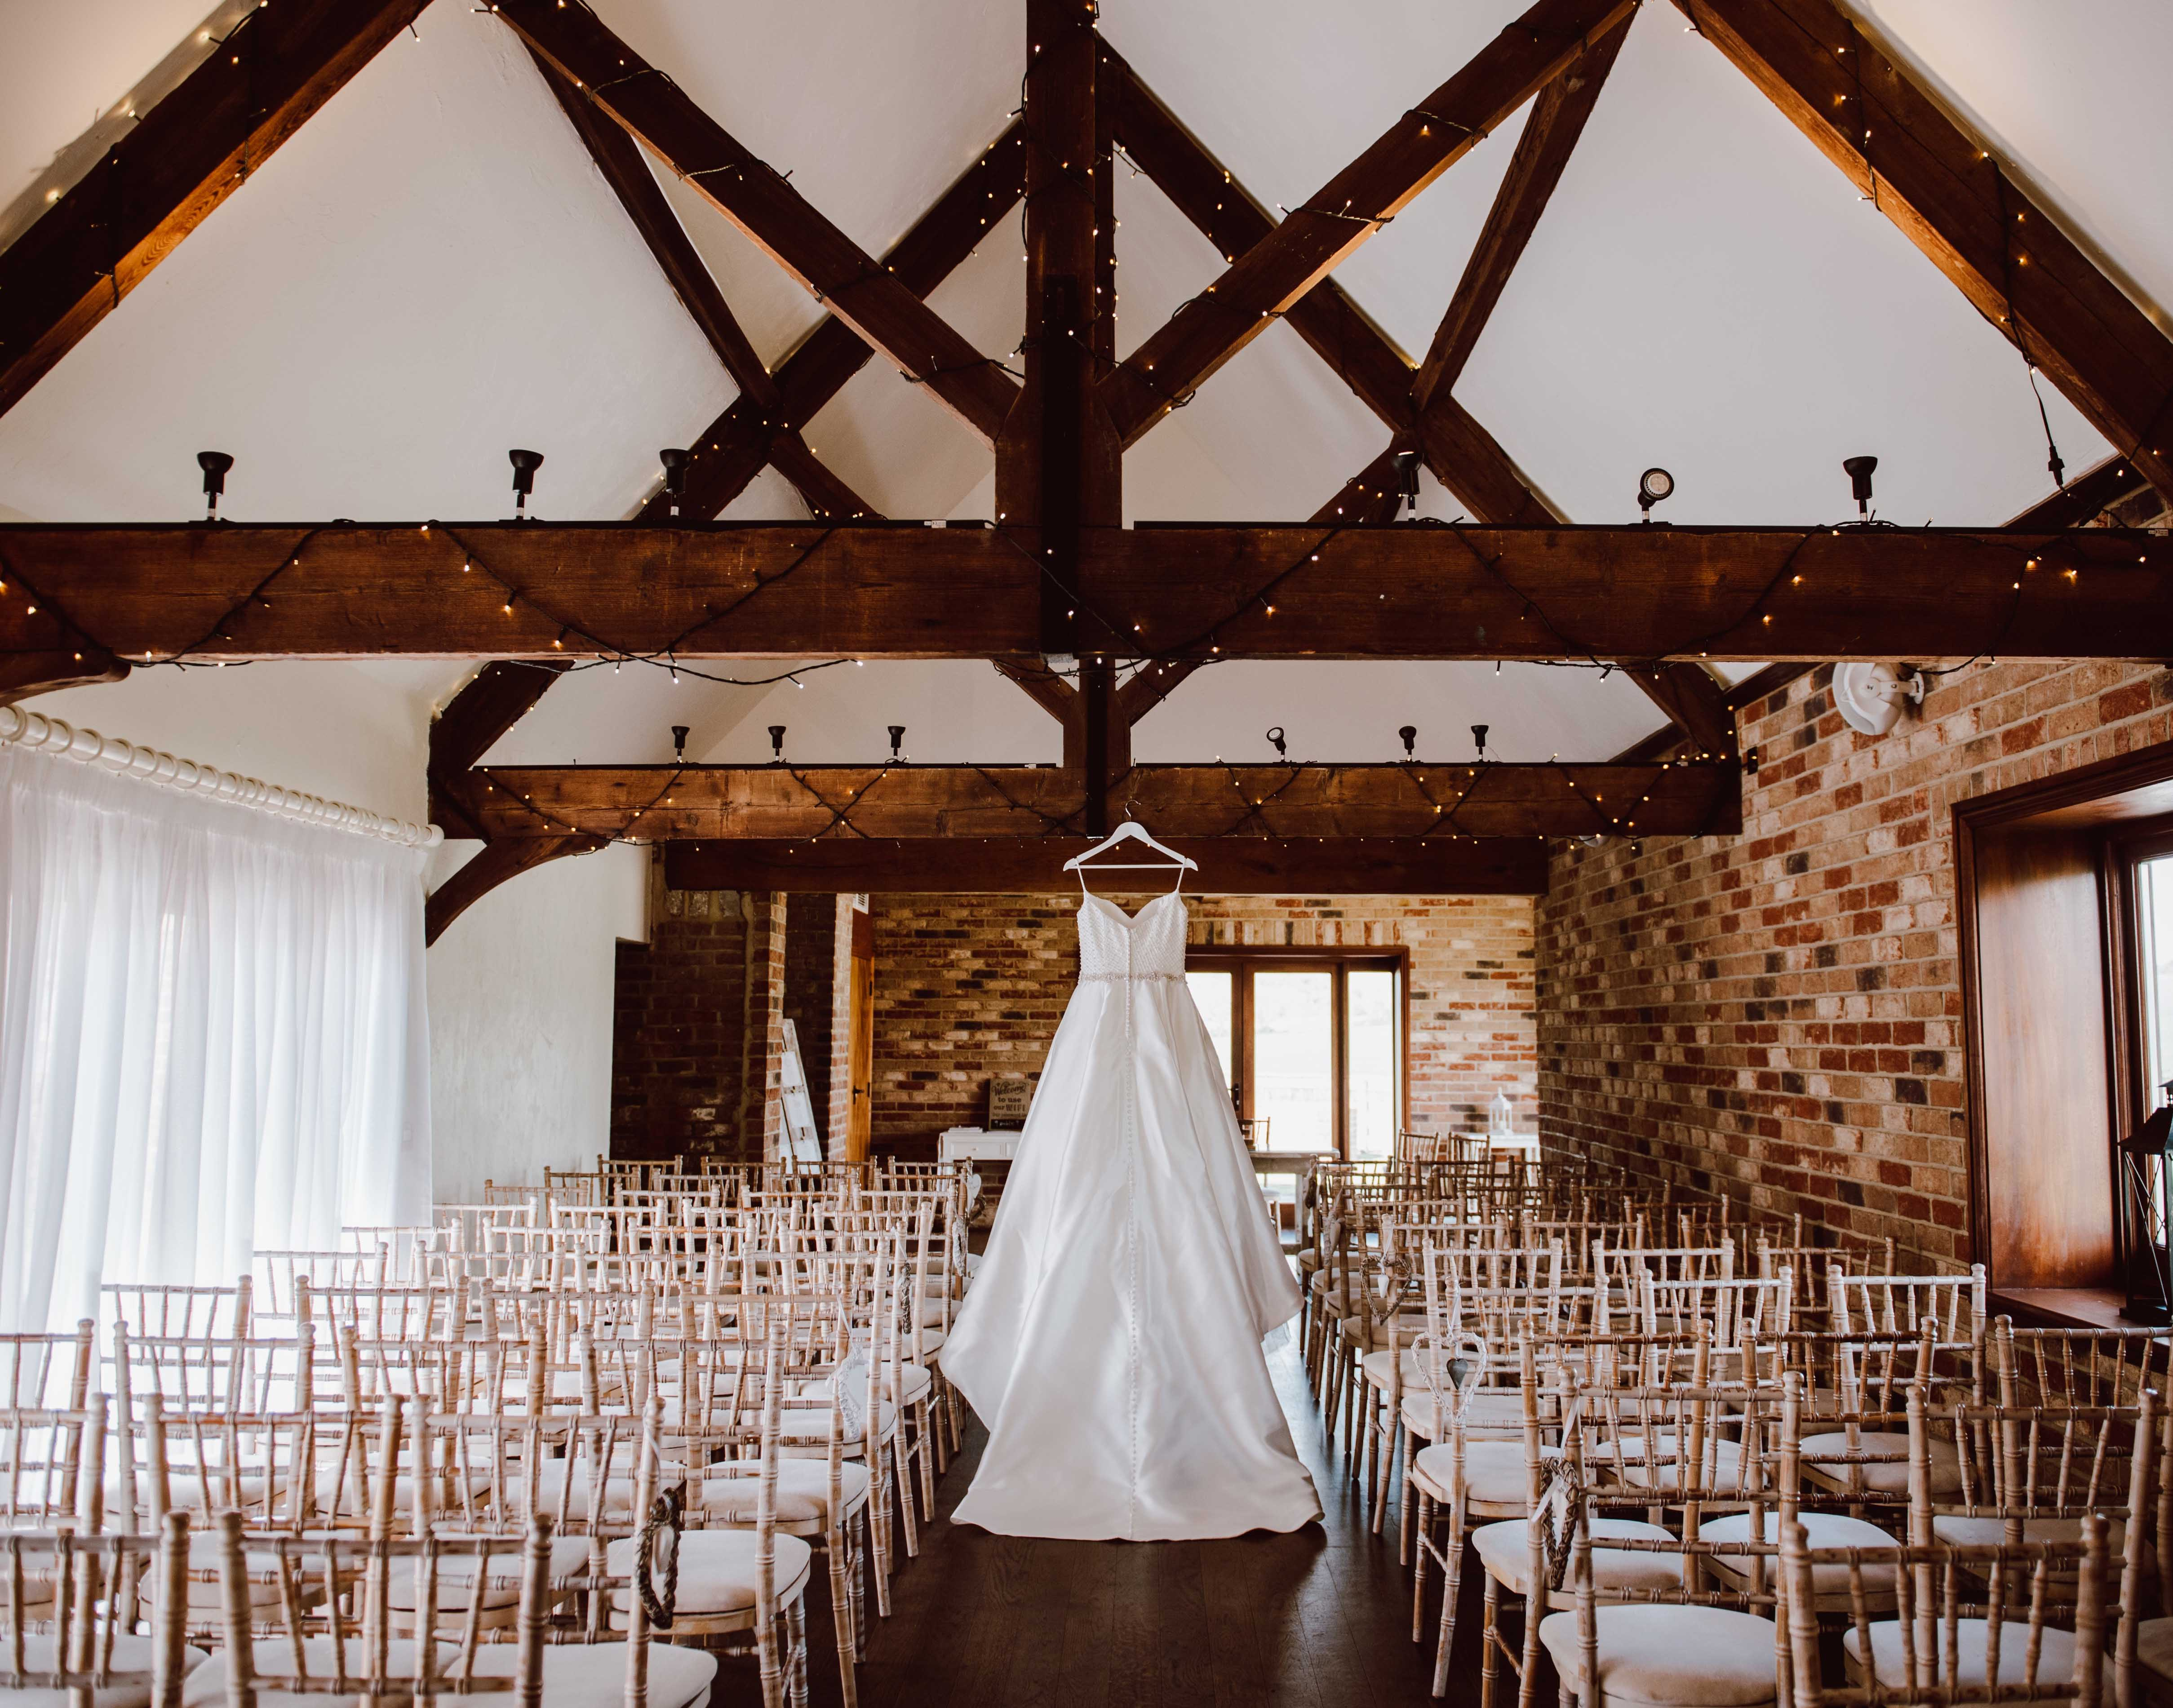 Our beautiful Cartshed, the perfect ceremony barn for all seasons